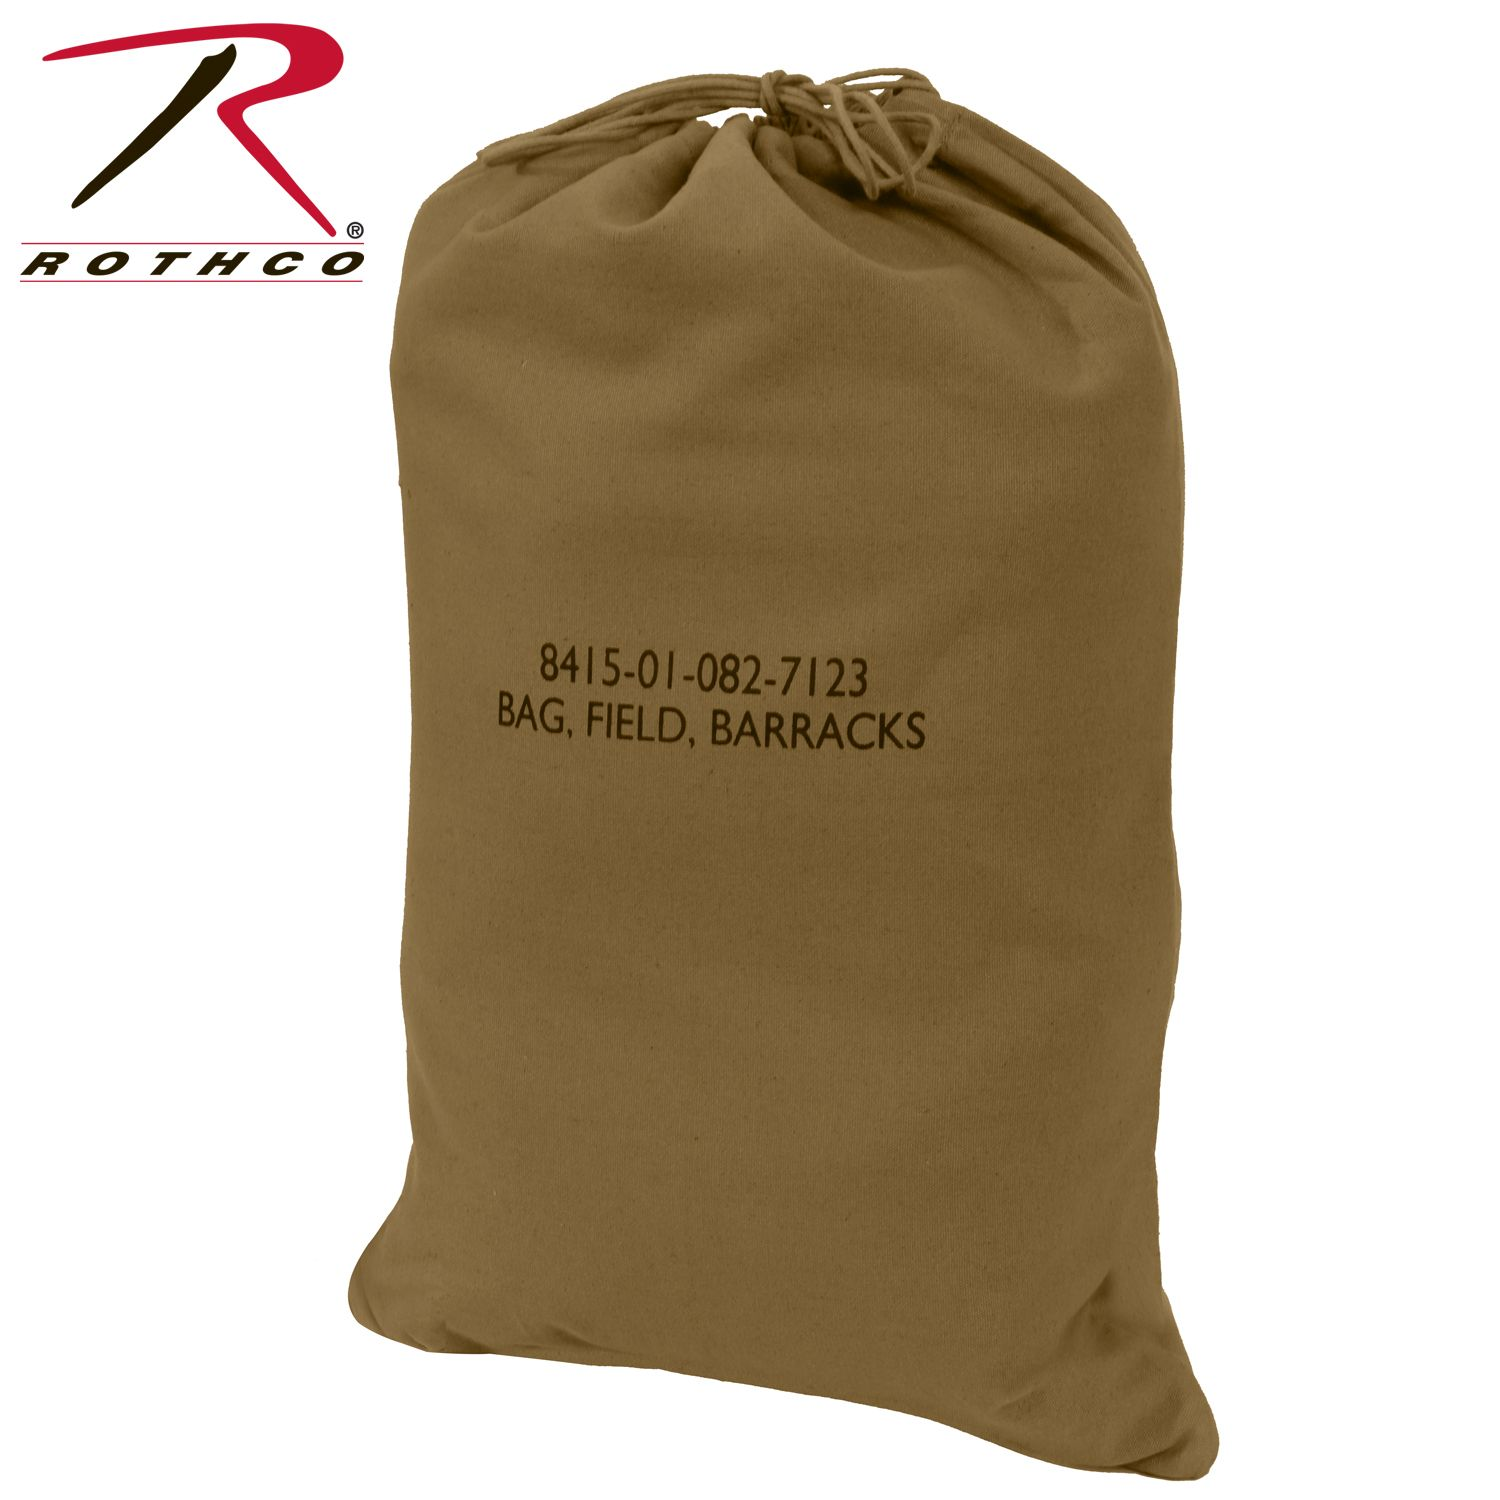 Buy Rothco G.I. Type Canvas Barracks Bag - Rothco Online at Best ... 3592633785f09